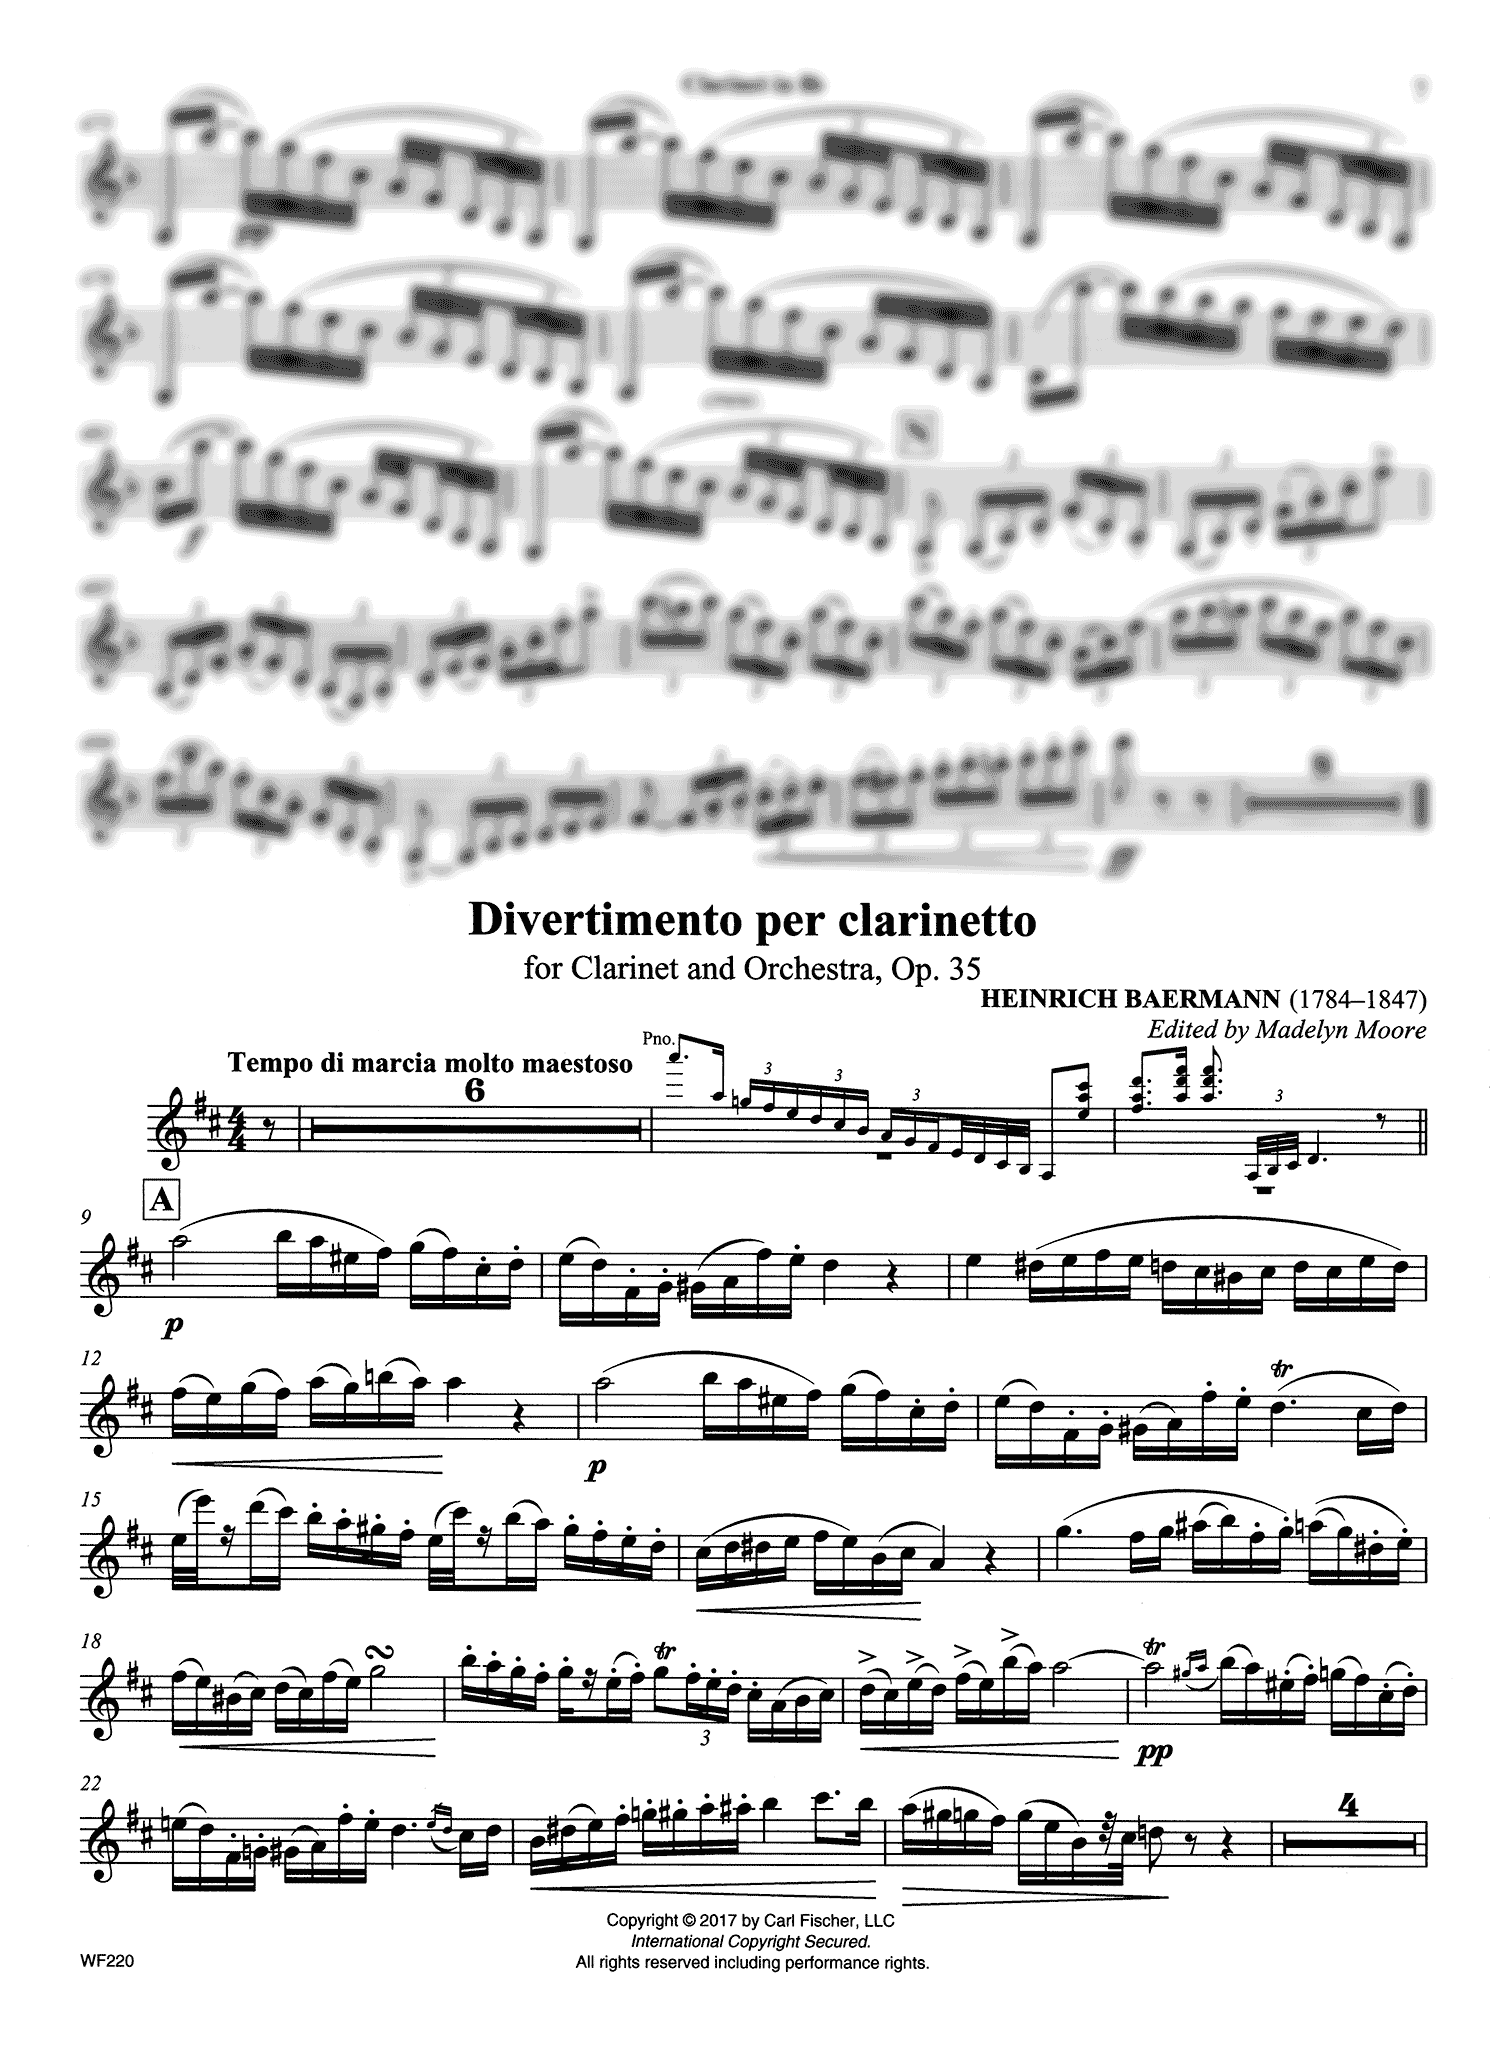 Divertimento, Op. 35 Clarinet part